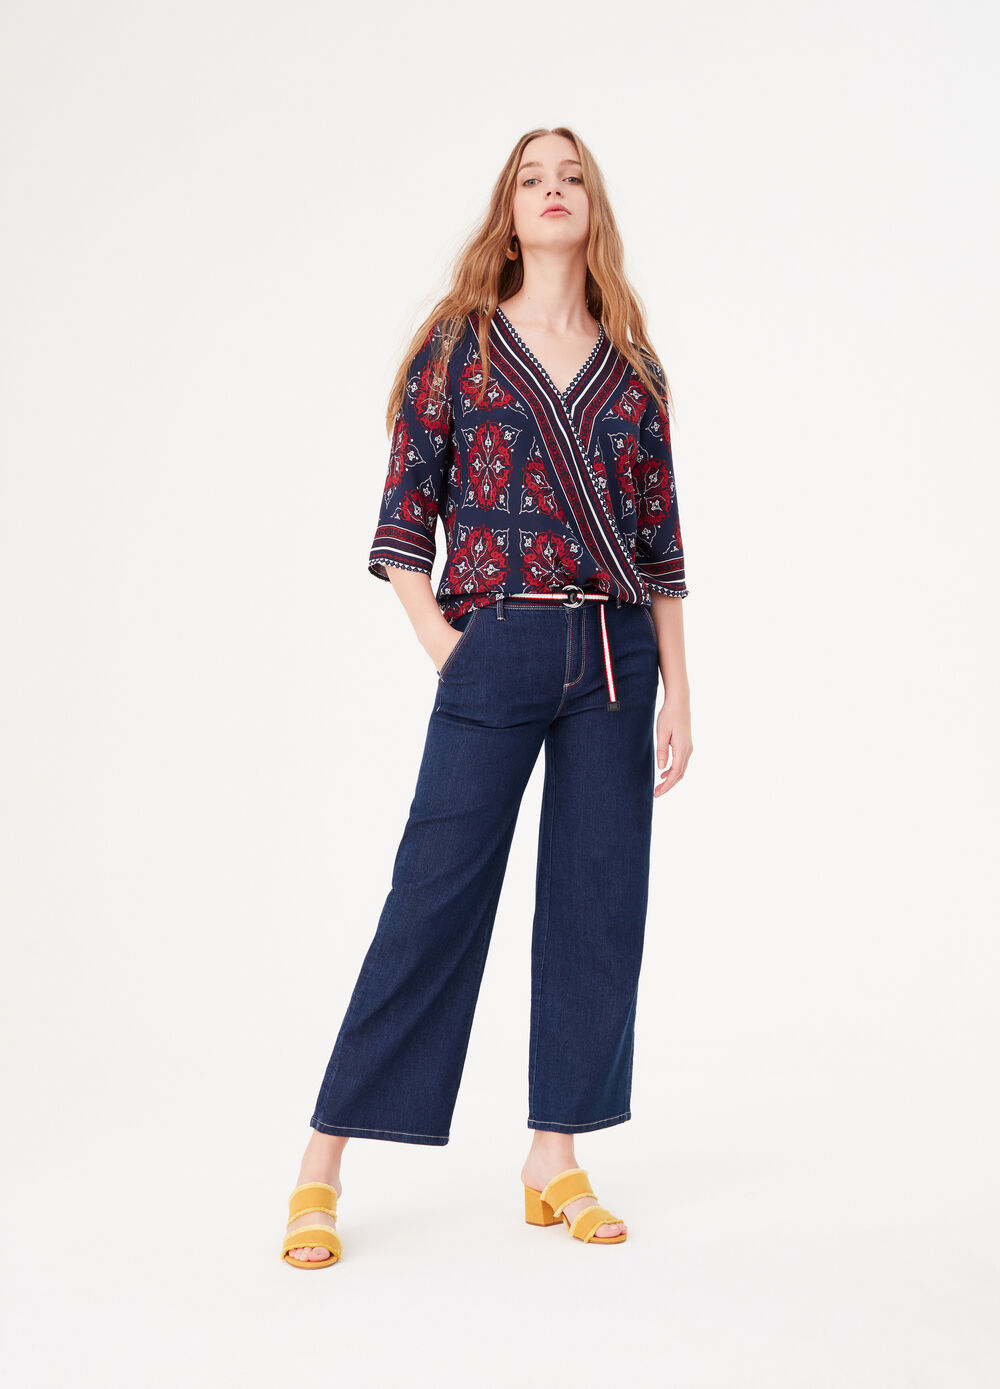 Blouse with kimono sleeves and print